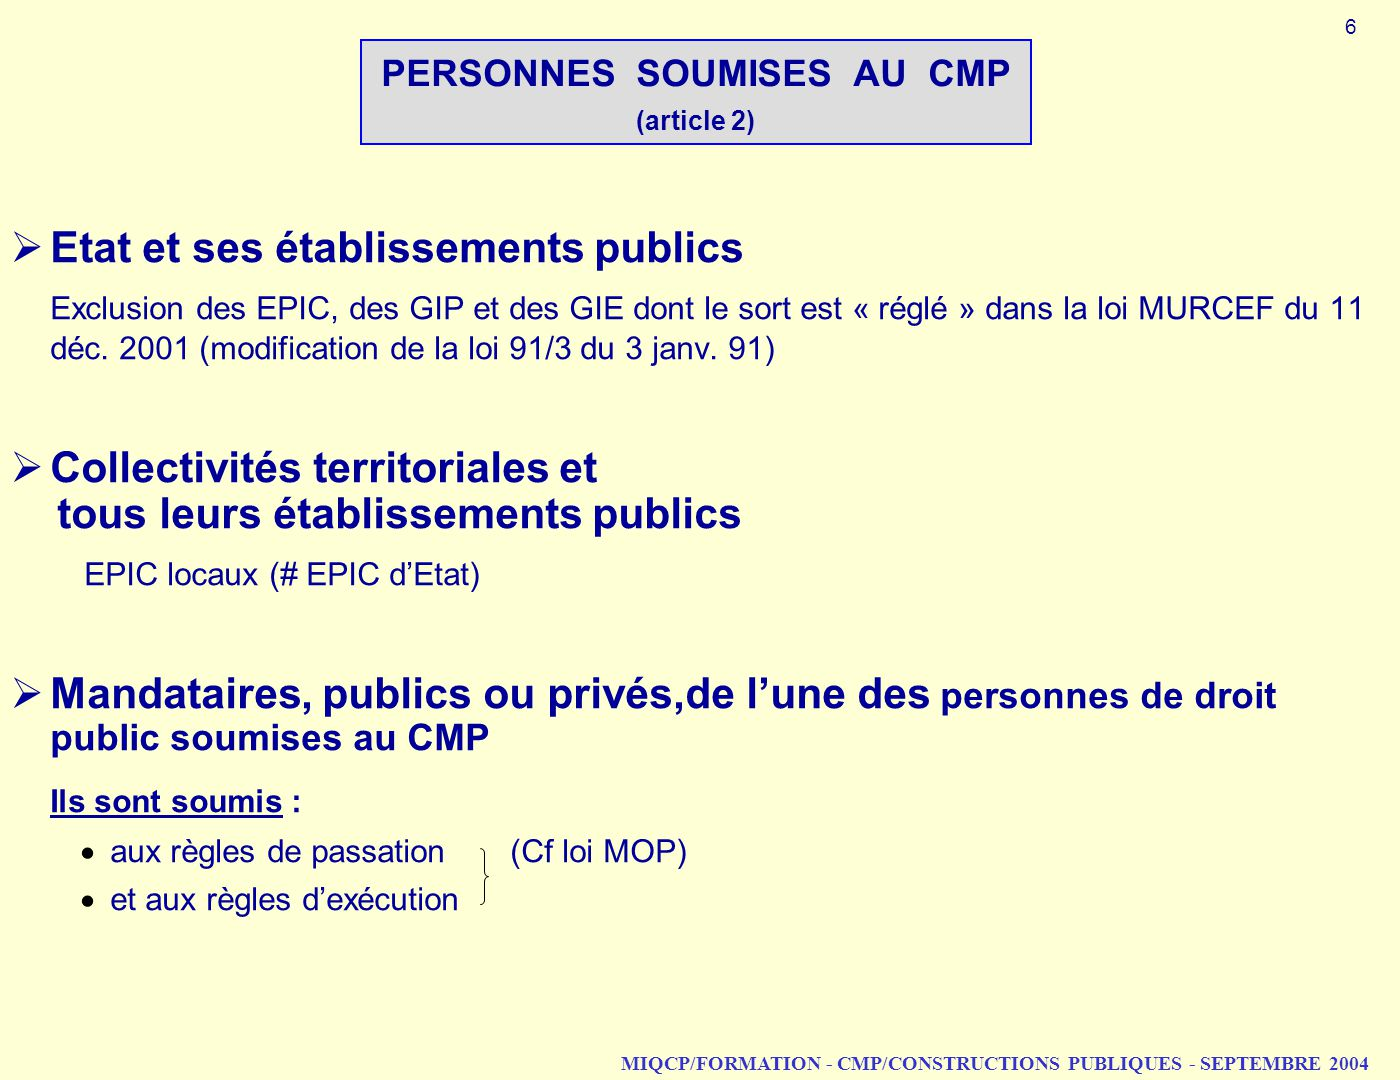 PERSONNES SOUMISES AU CMP (article 2)